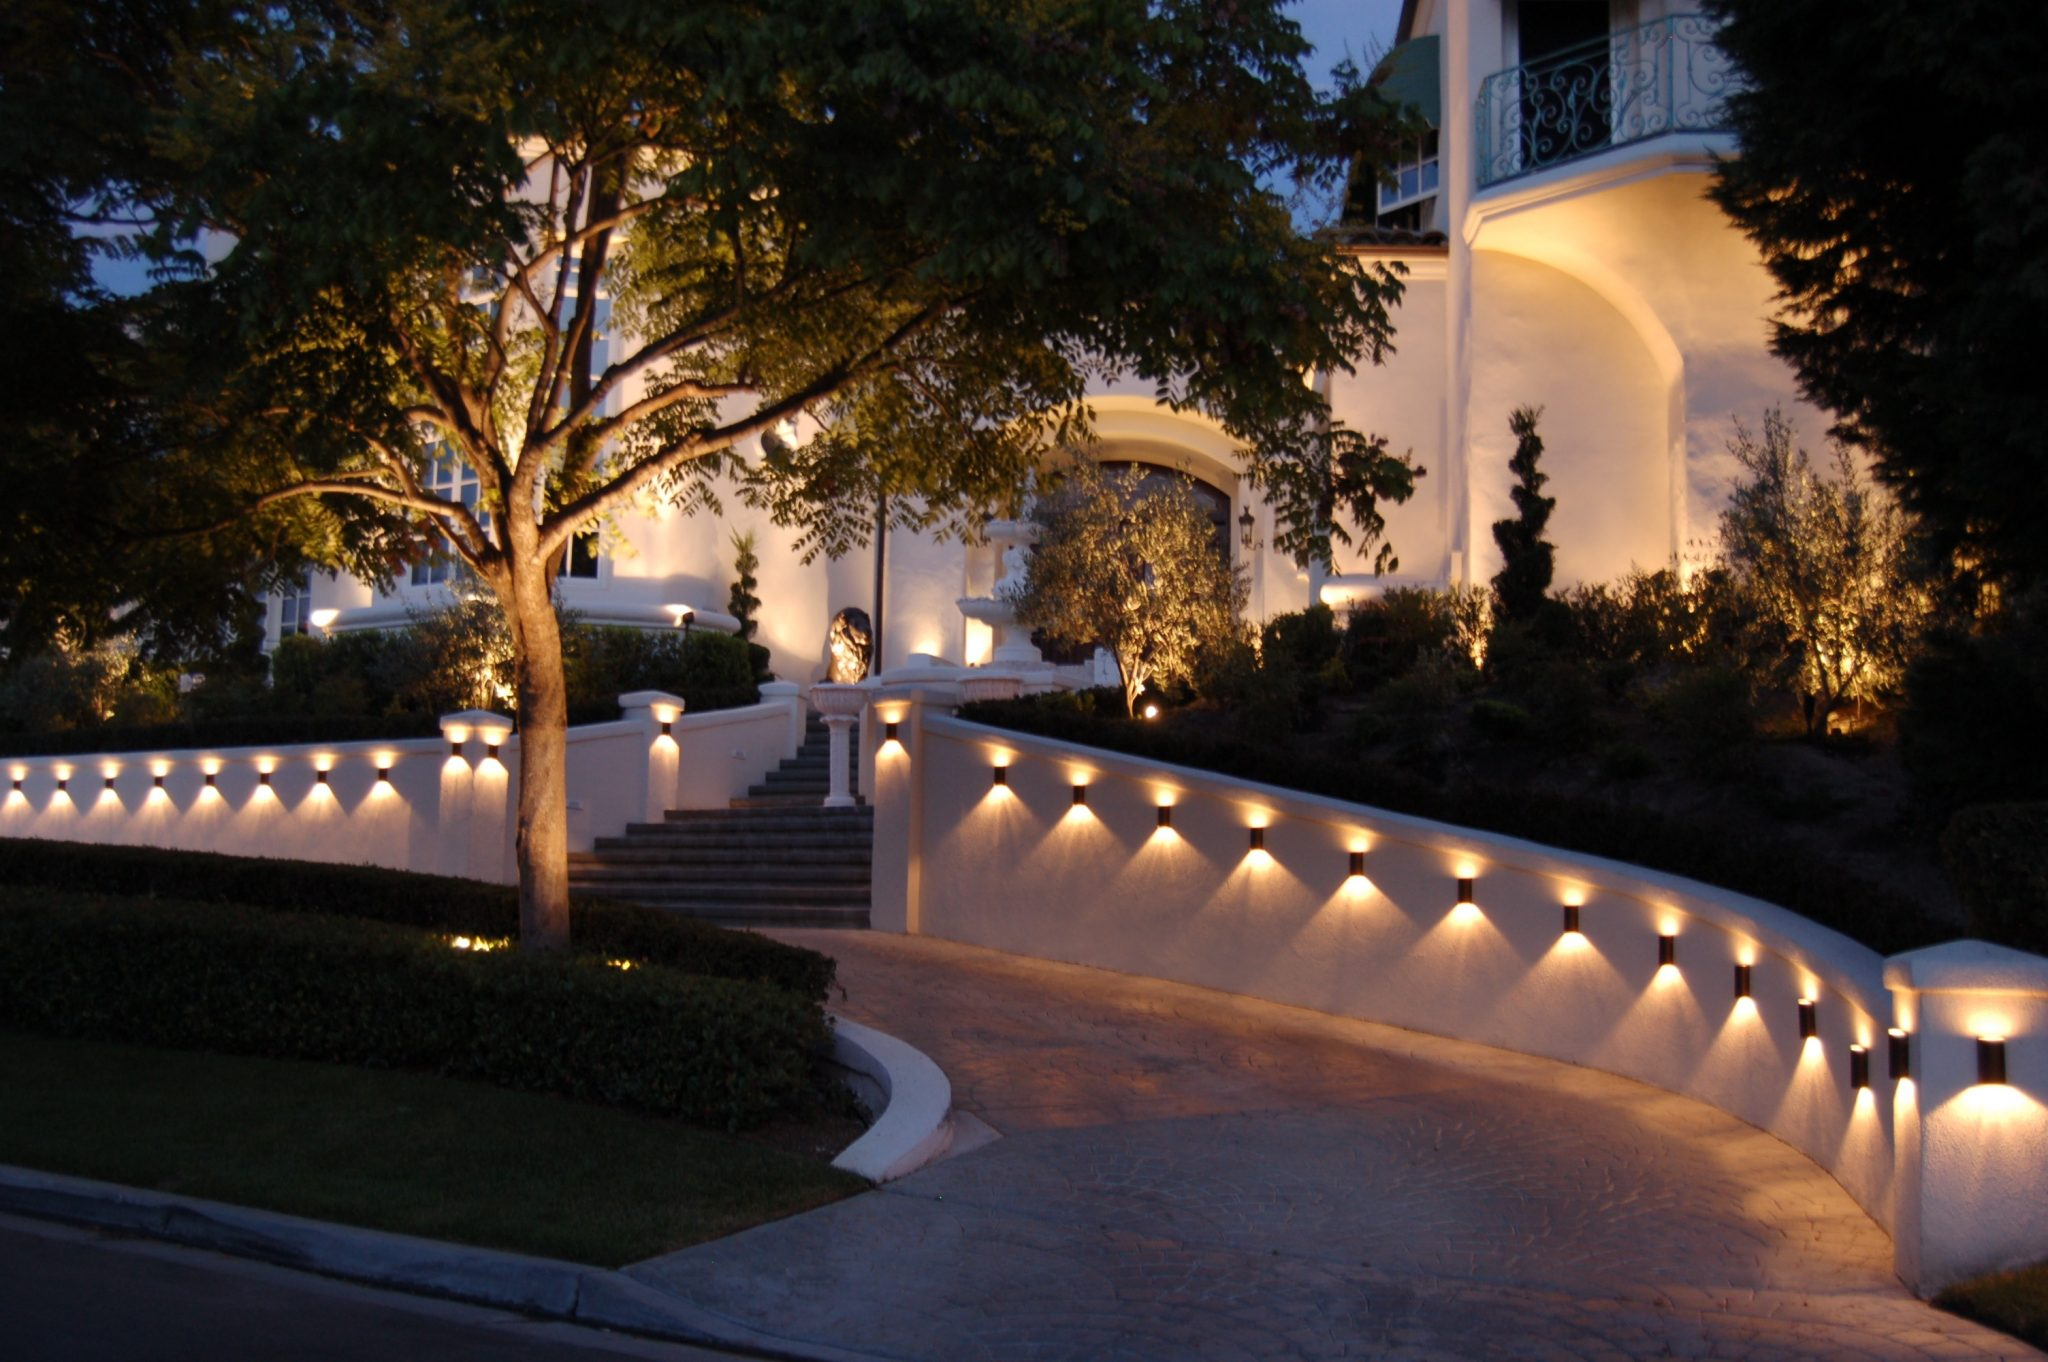 Driveway Lights Guide: Outdoor Lighting Ideas + Tips